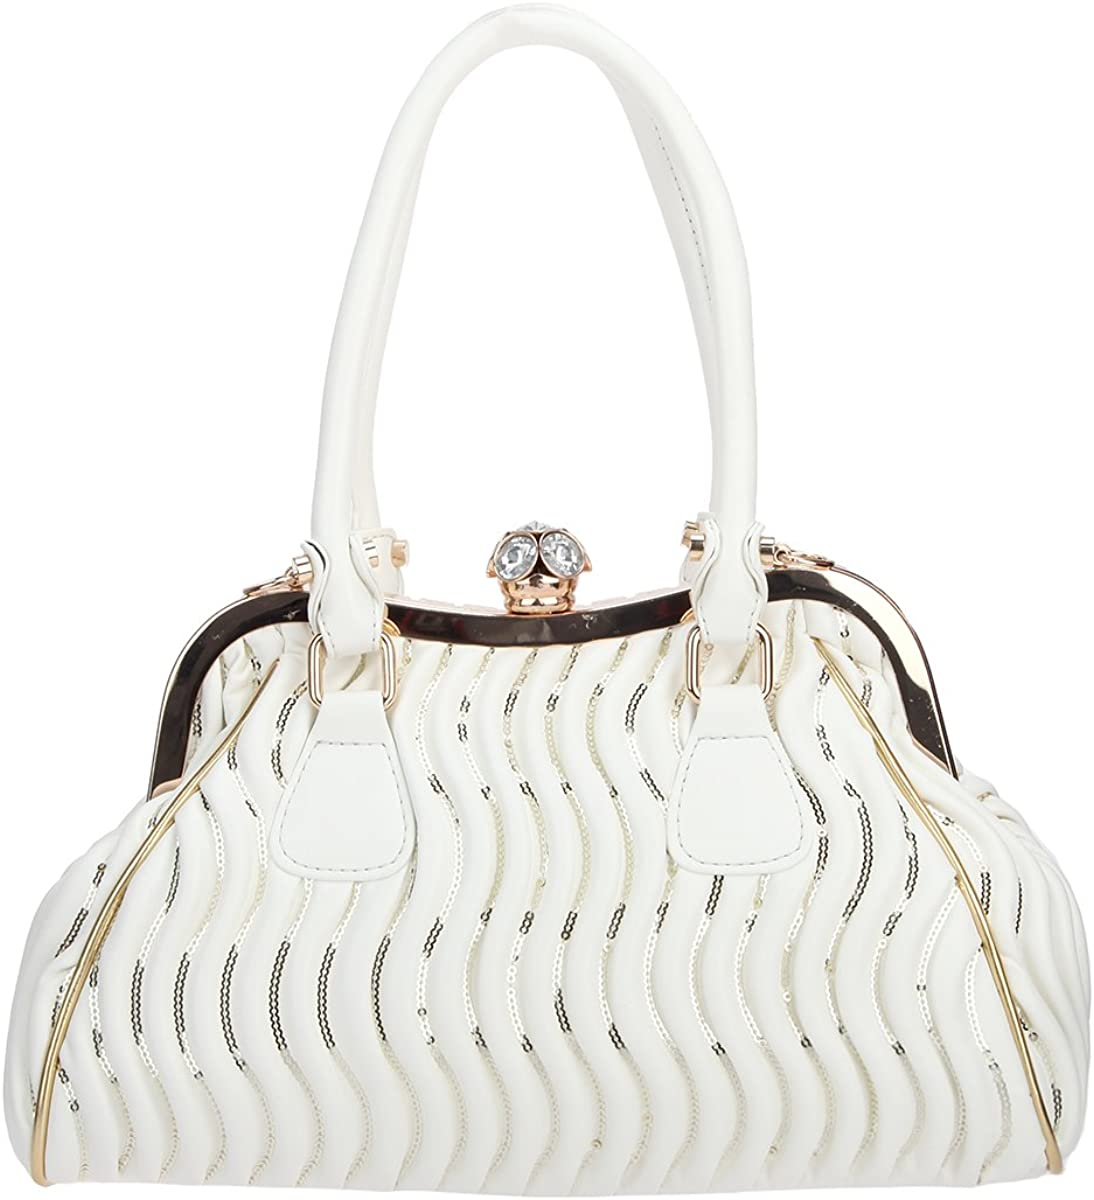 Bonjanvye Butterfly Spherical Crystal Ball Hand Bags and Pu Leather Purse for Women Bags